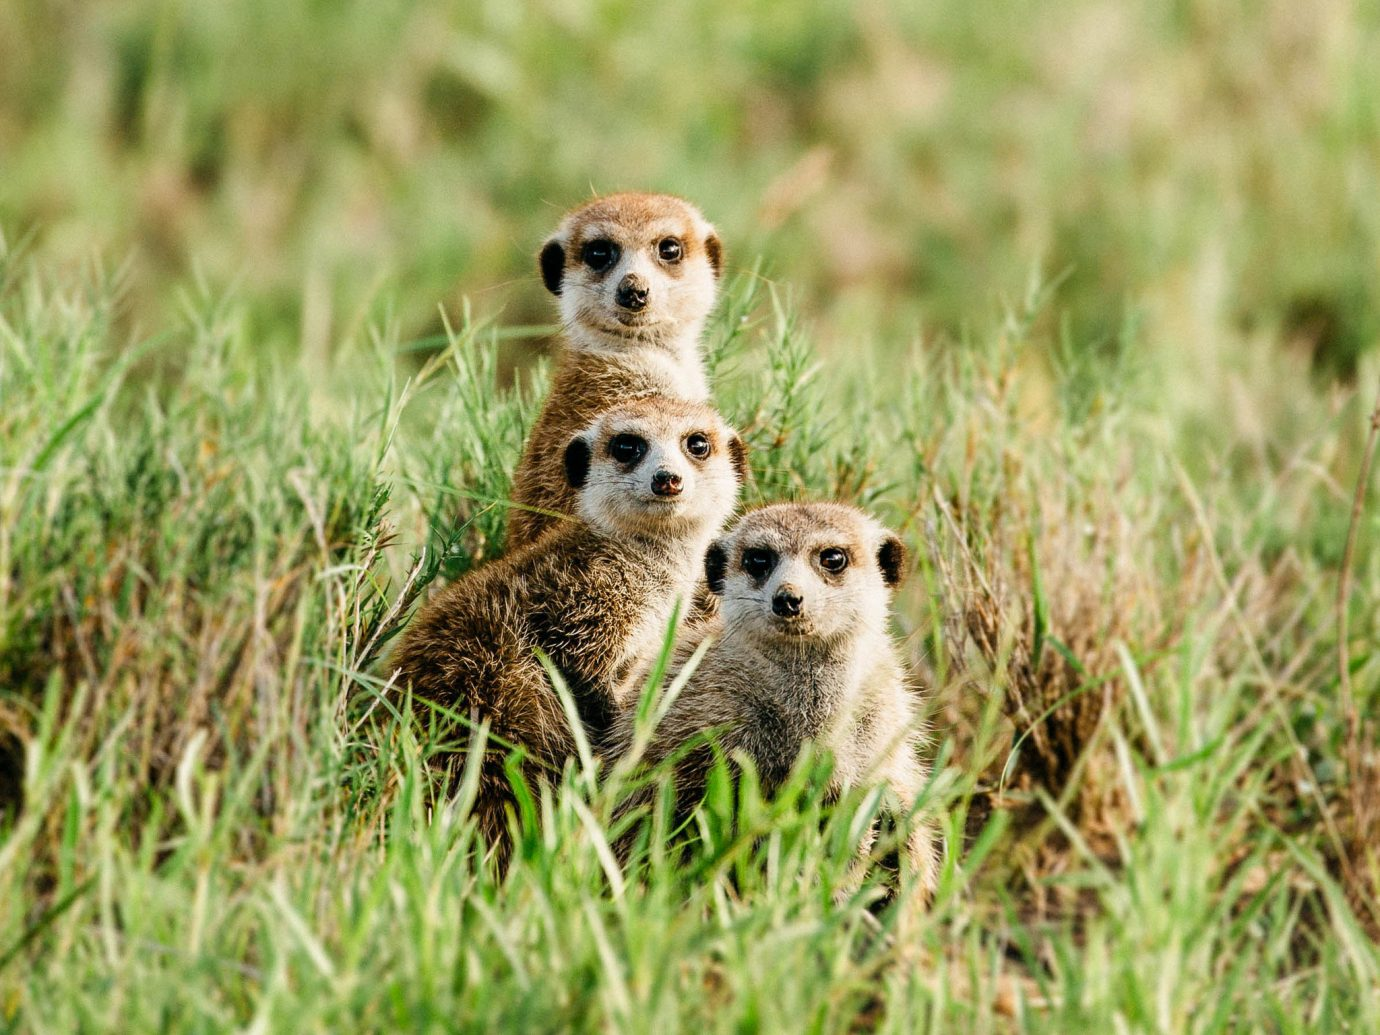 Outdoor Activities Safari Trip Ideas Wildlife mammal ecosystem fauna grassland grass terrestrial animal cheetah prairie meerkat ecoregion prairie dog grass family whiskers snout